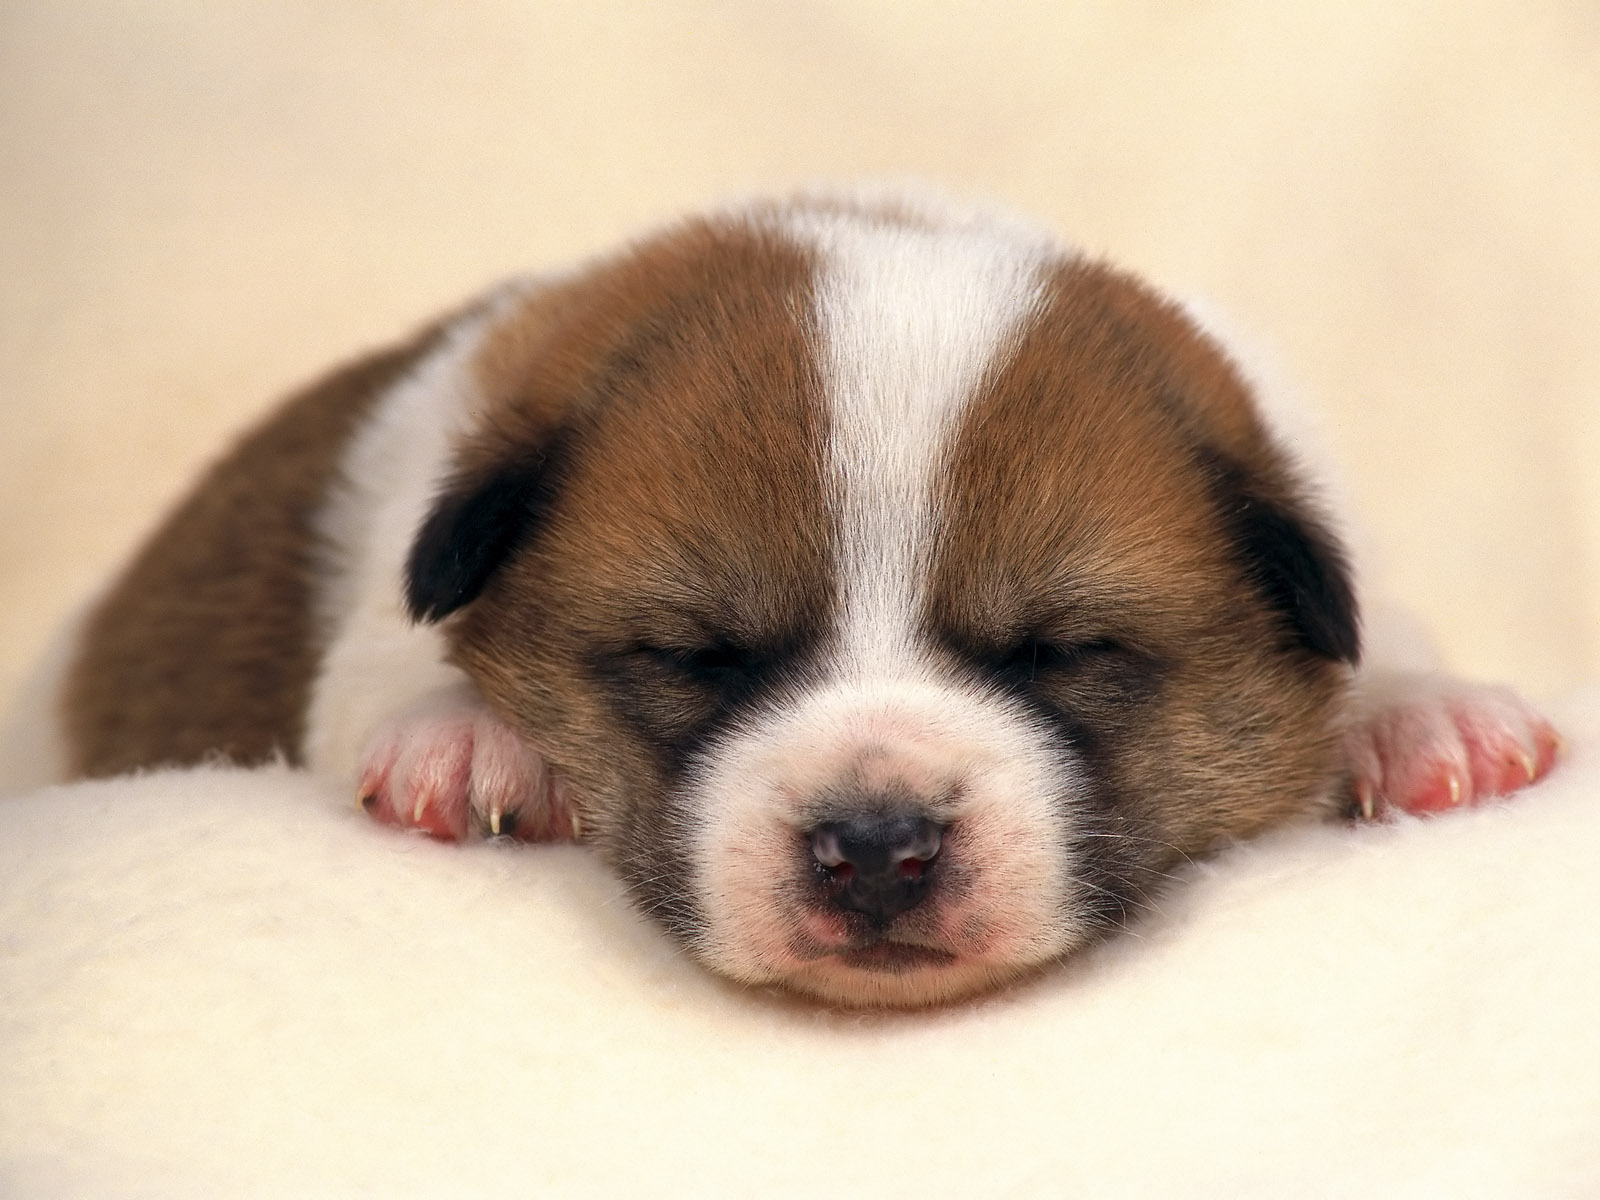 hd cute puppy pictures | high quality puppies cute picture | nice